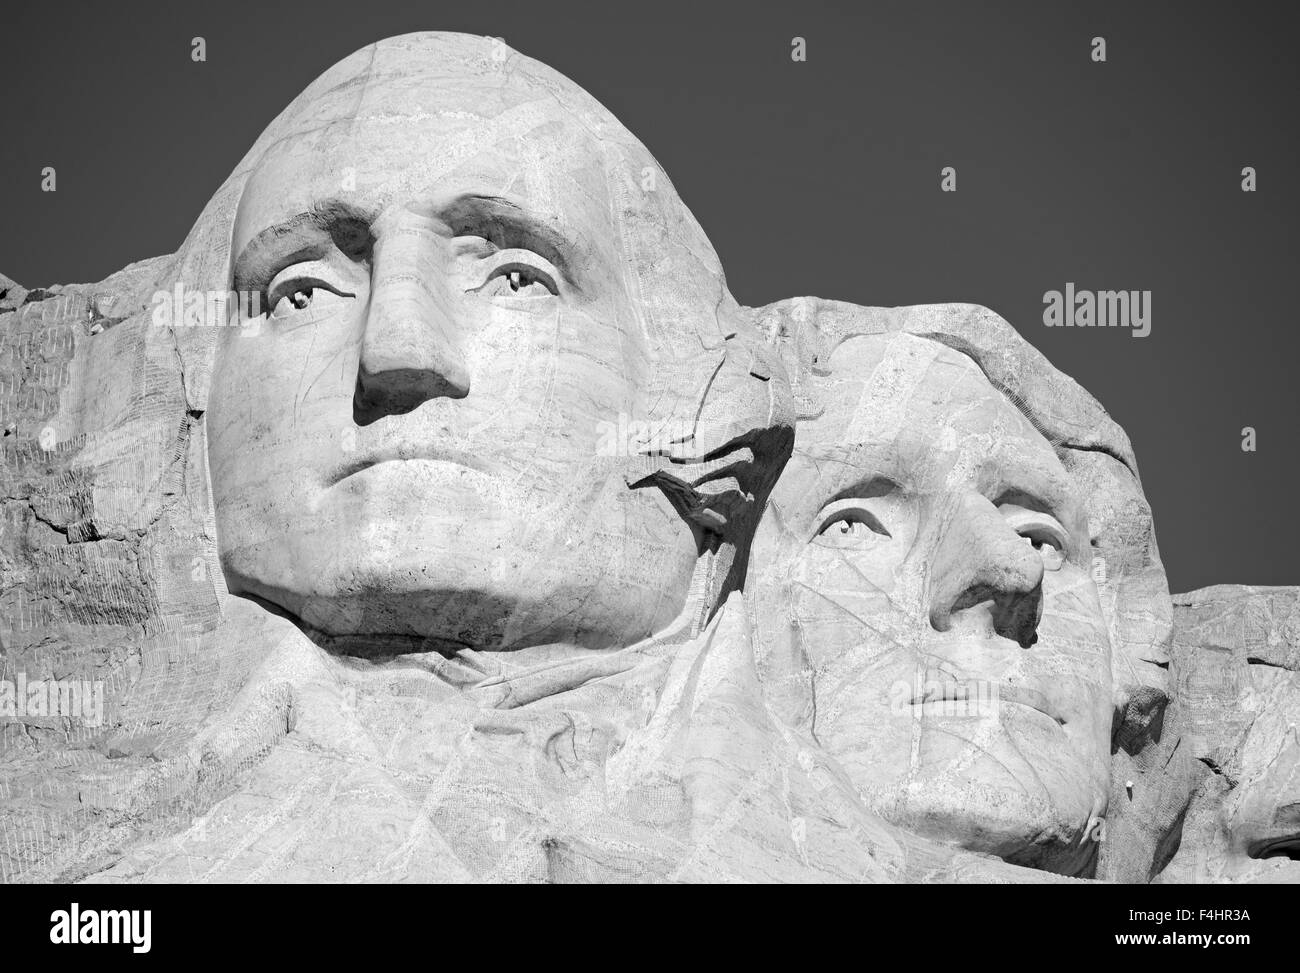 Mount Rushmore National Memorial, symbol of America located in the Black Hills, South Dakota, USA. Stock Photo